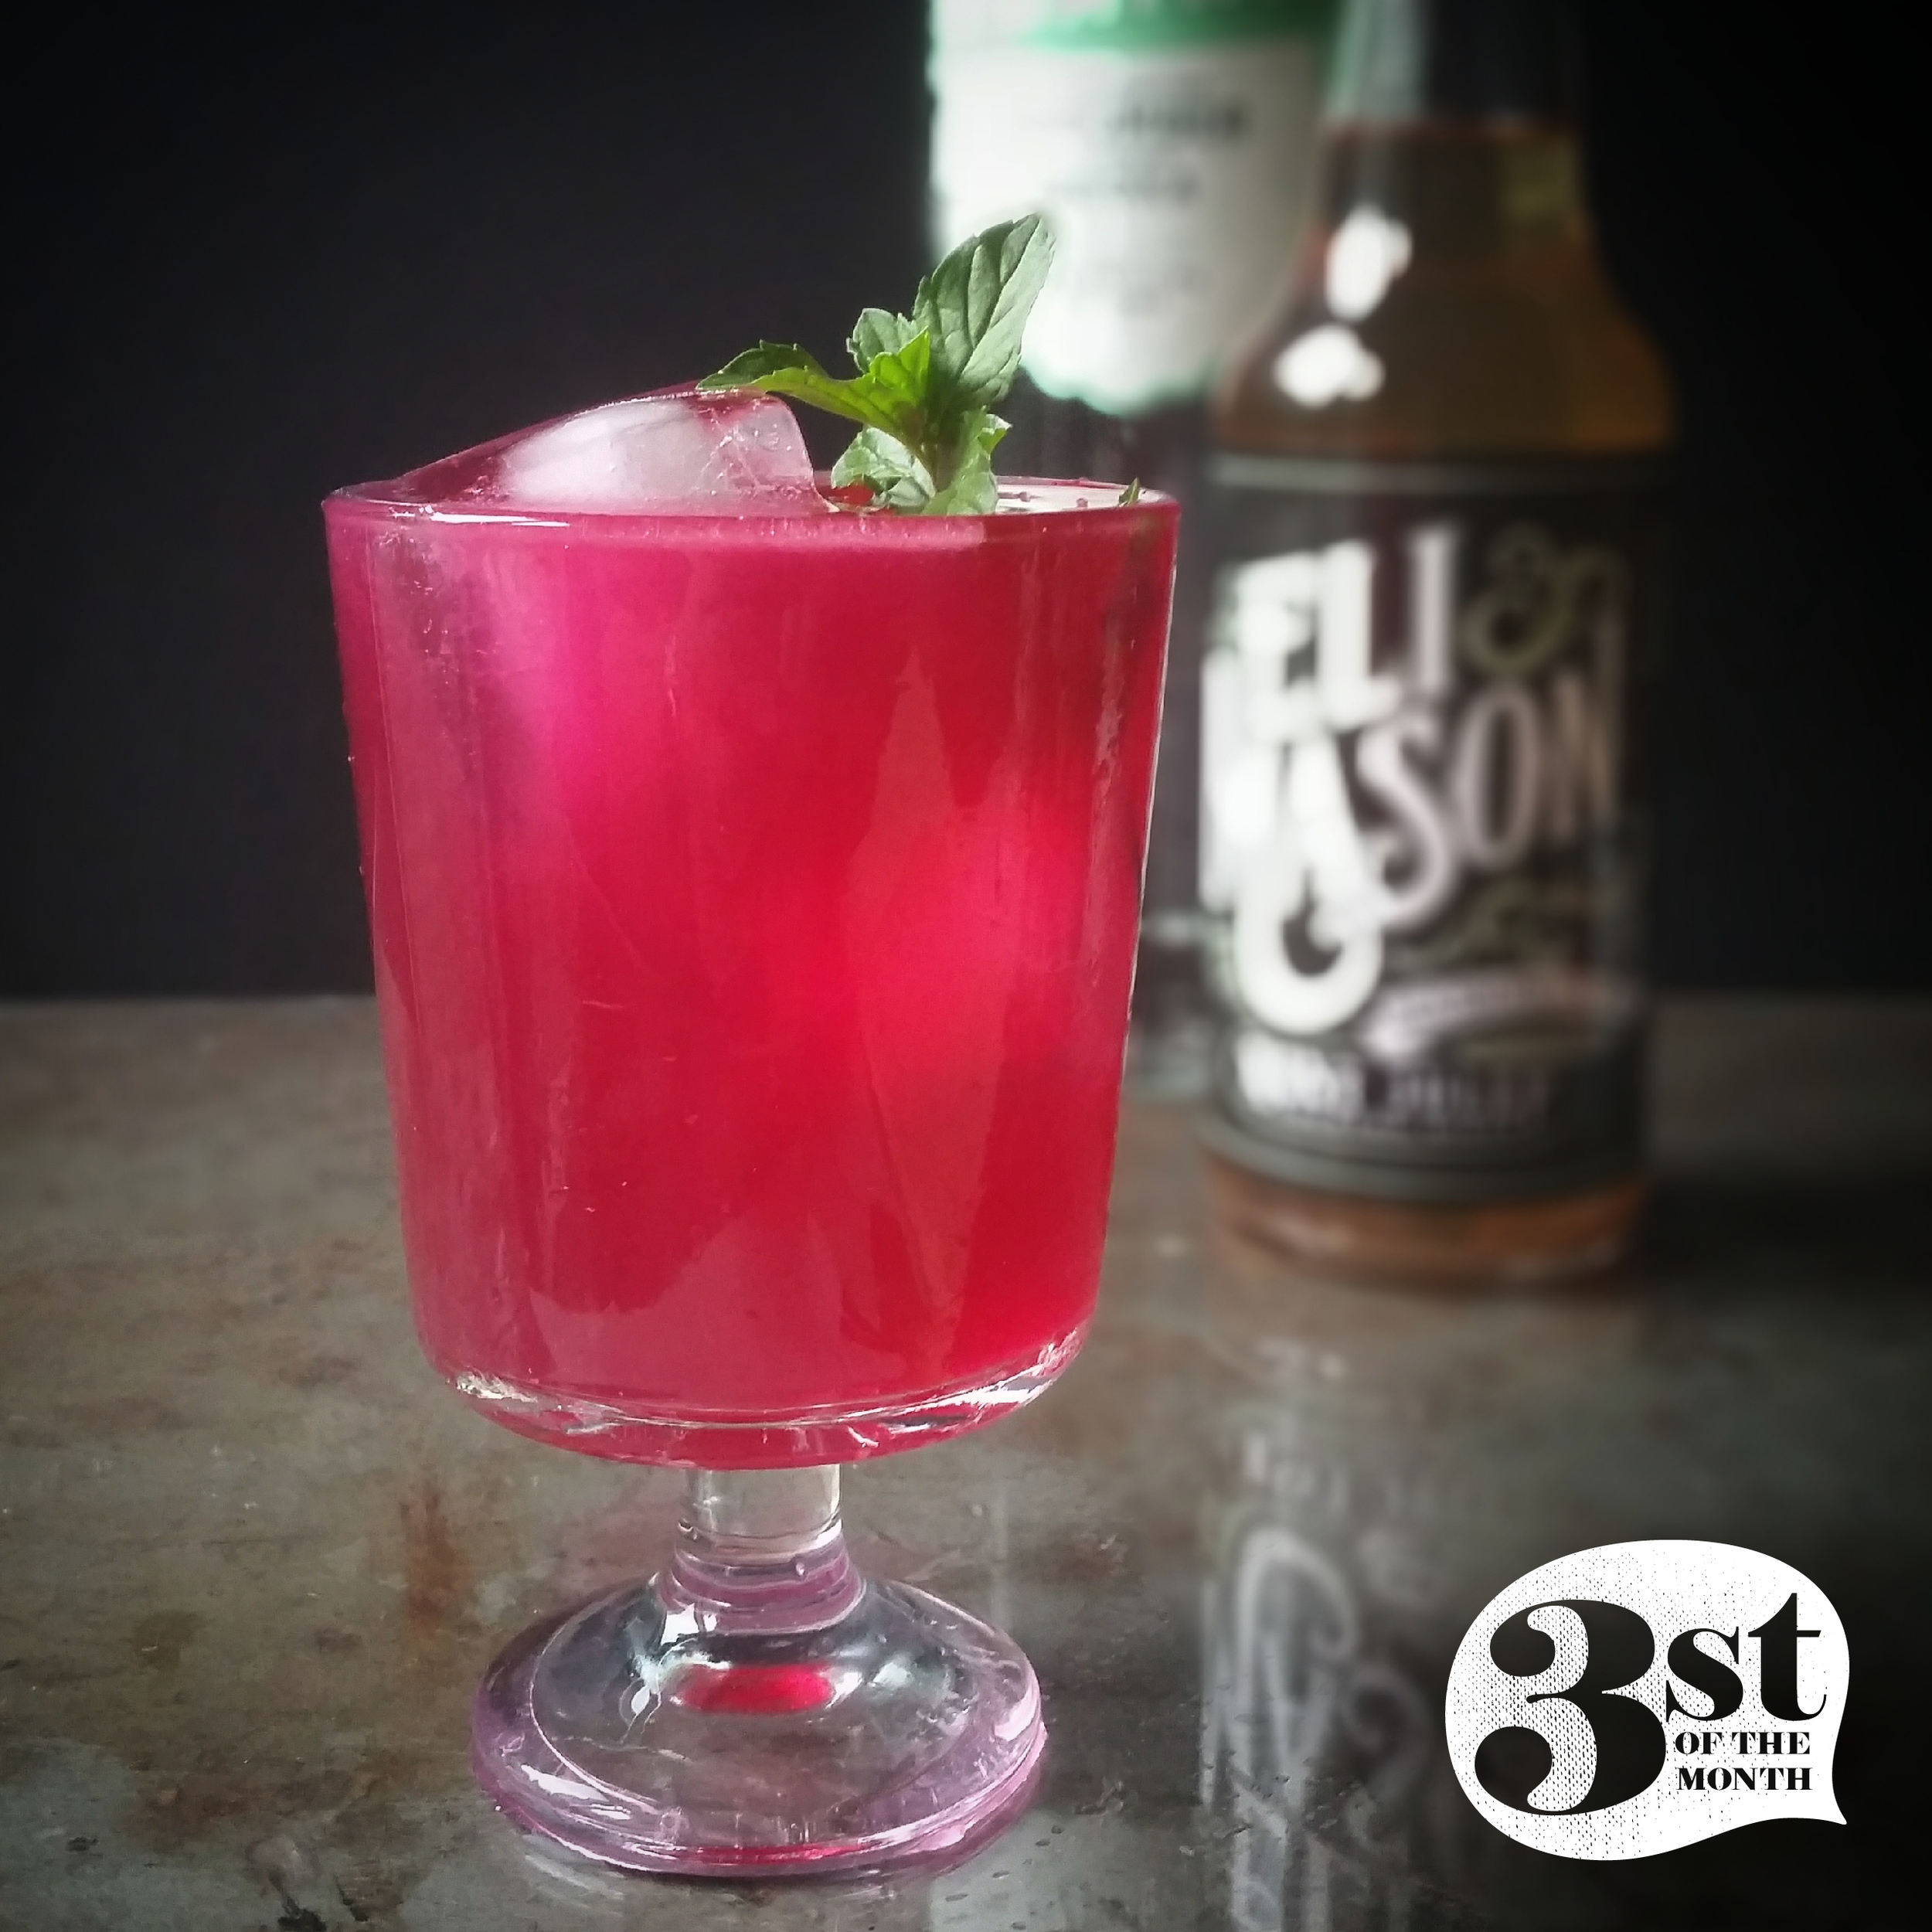 The Garden Beet cocktail from 3st of the Month